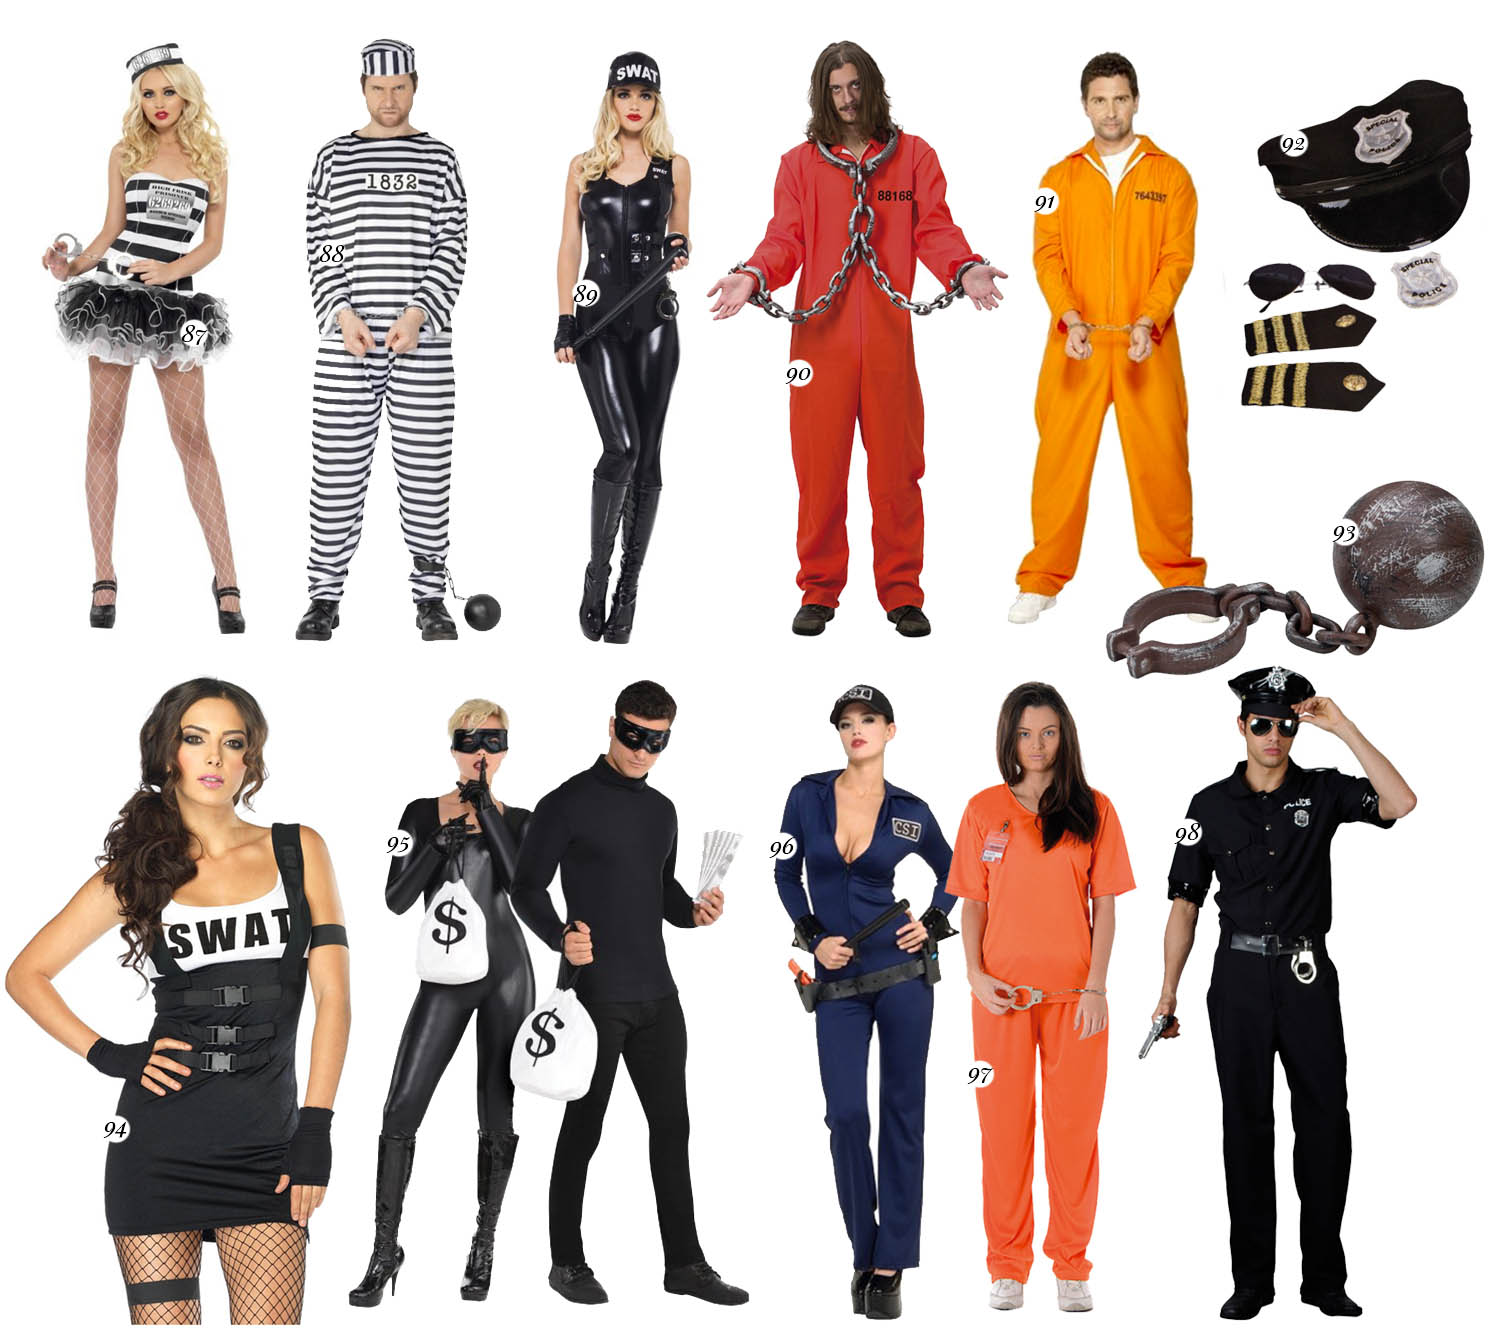 Convict & Police Couple Costumes